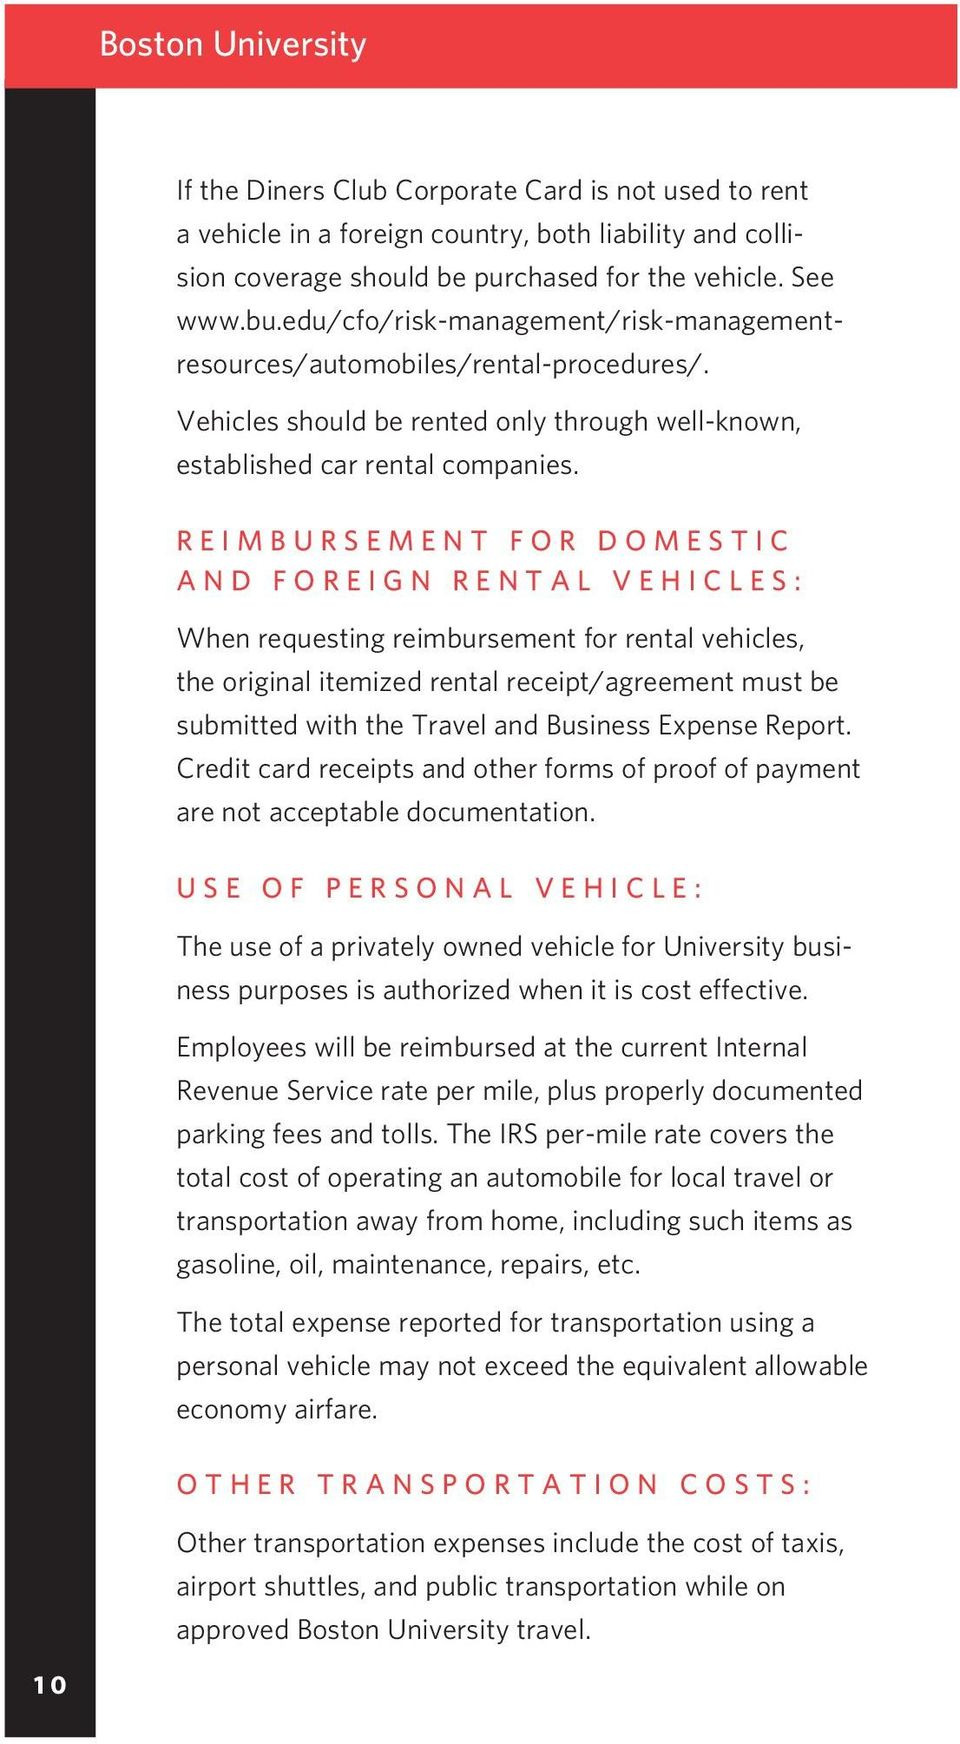 Reimbursement for Domestic and Foreign Rental Vehicles: When requesting reimbursement for rental vehicles, the original itemized rental receipt/agreement must be submitted with the Travel and